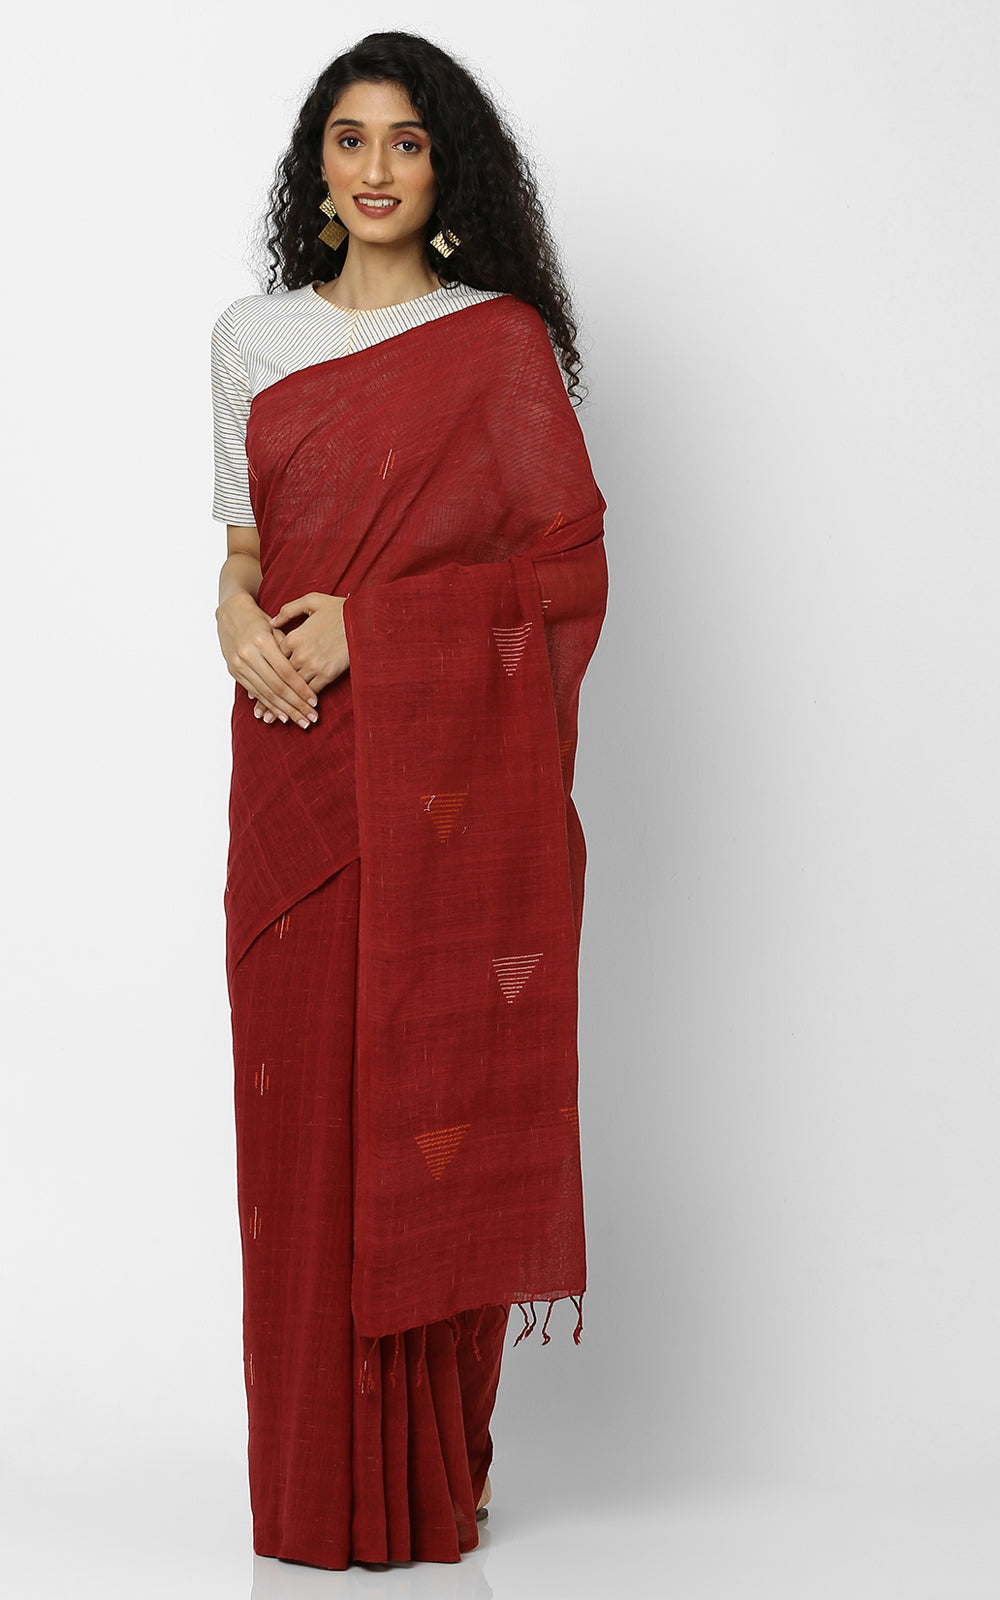 MADDER RED ORGANIC COTTON YARN DYED SAREE